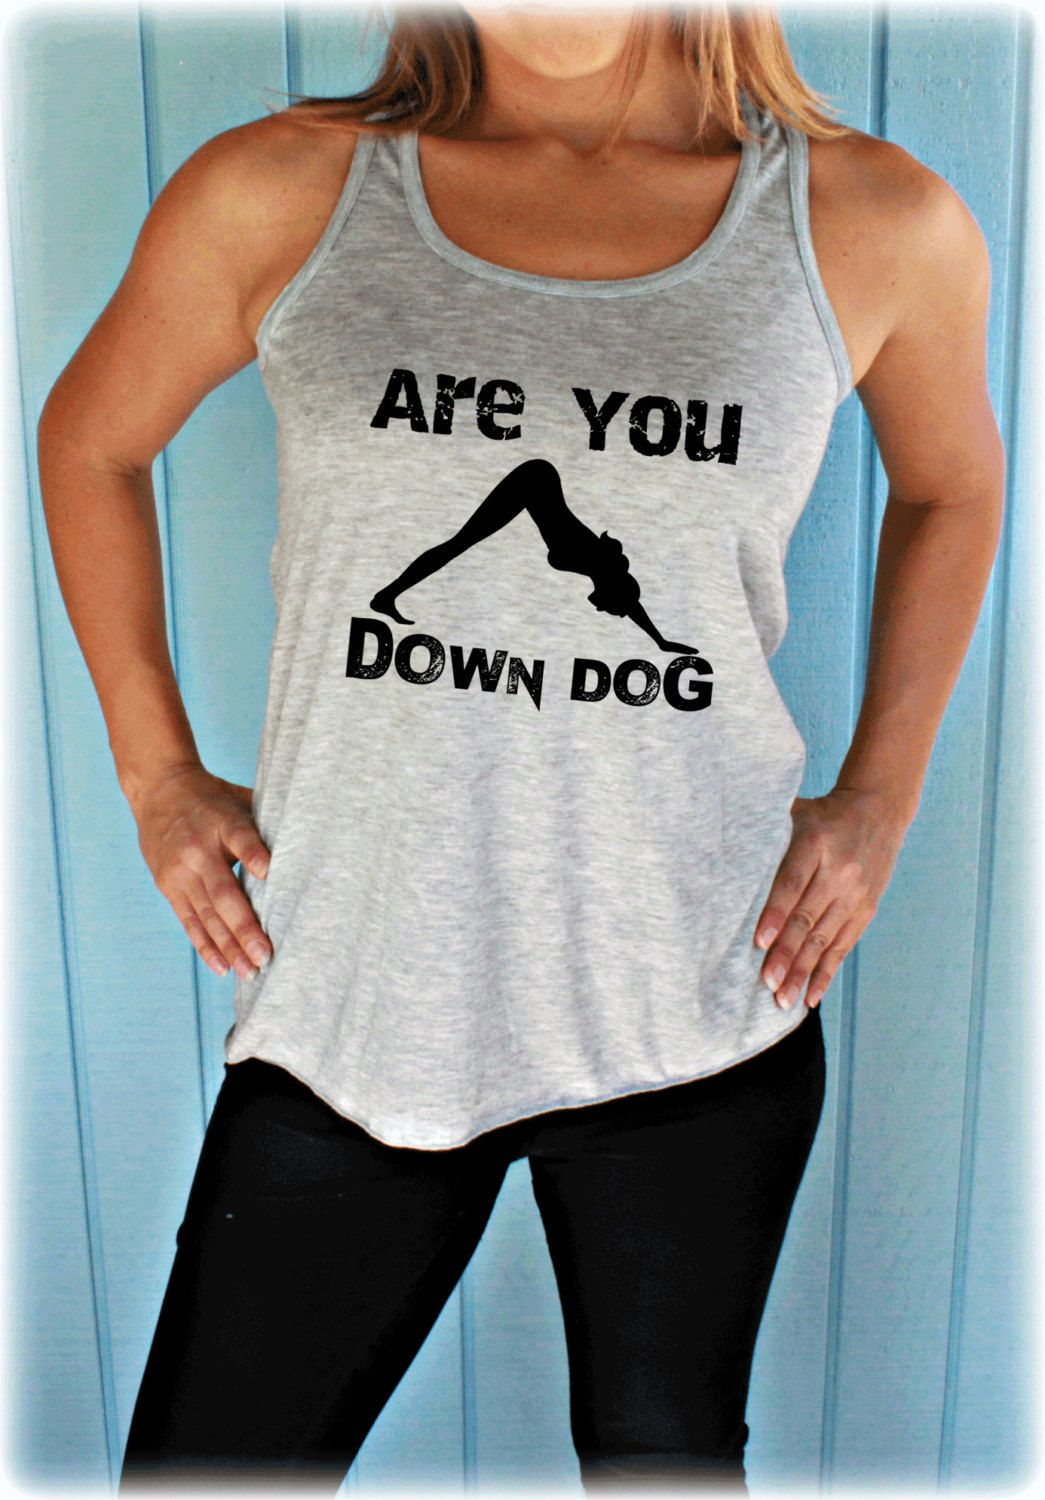 Flowy Yoga Tank Top. Are You Down Dog. Workout Apparel. Funny Yoga Shirt